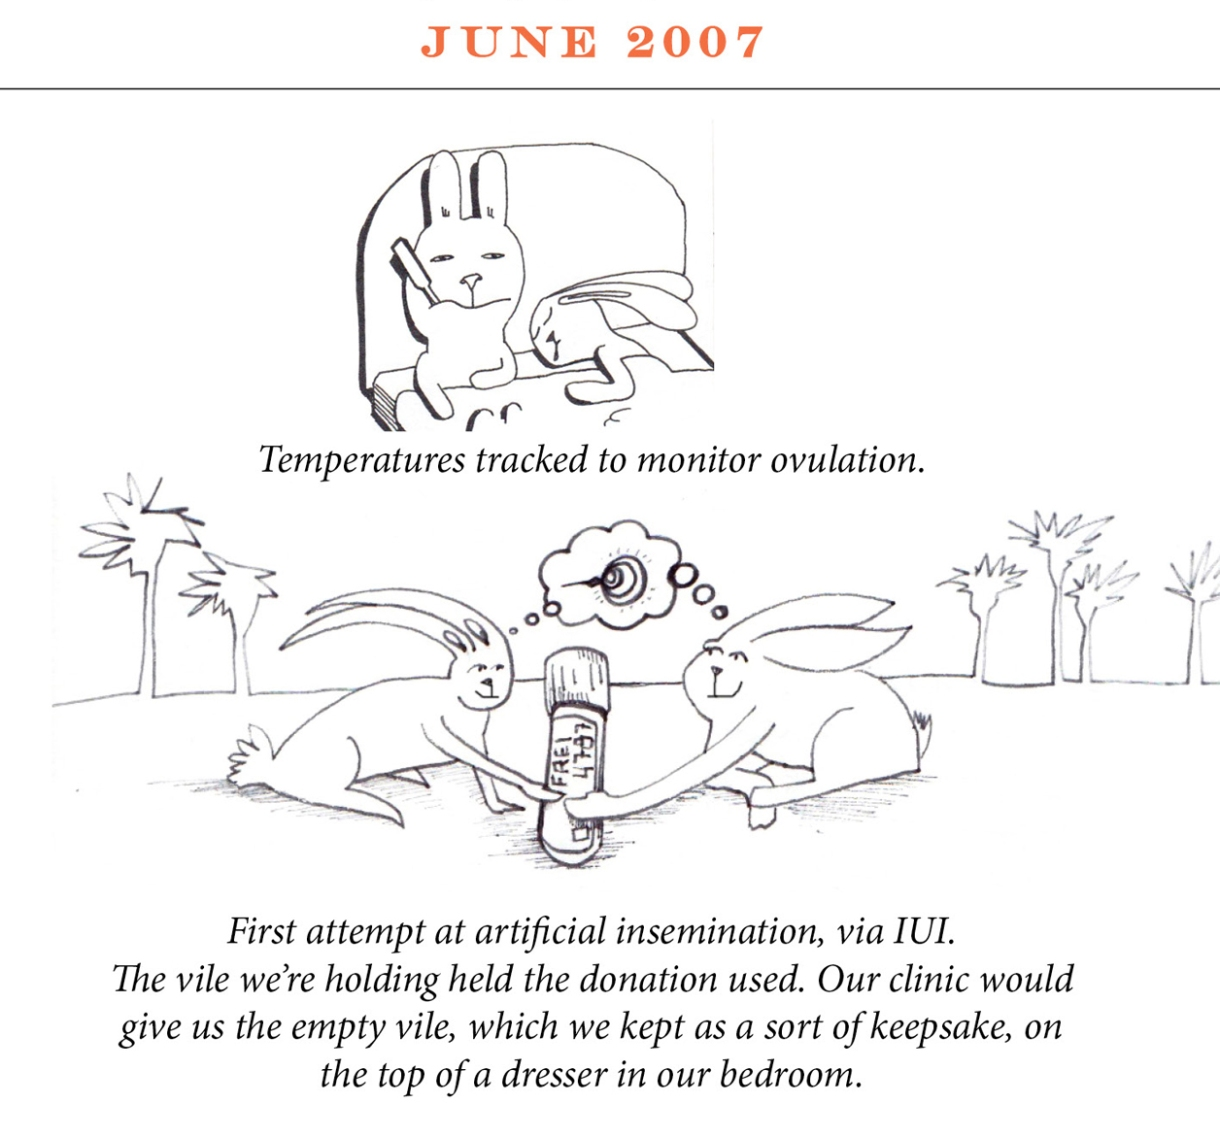 """June 2007 Image description: The two rabbits are in their bed. One sleeps soundly and the other is sitting up against the headboard with a thermometer in her mouth, looking tired. Caption: """"Temperatures tracked to monitor ovulation."""" Image description: The rabbits smile at each other, each with one hand on the vile that once held the sperm that was used. They share a thought bubble with an image of insemination. Caption: """"First attempt at artificial insemination, via IUI. The vile we're holding held the donation used. Our clinic would give us the empty vile, which we kept as a sort of keepsake, on the top of a dresser in our bedroom."""""""